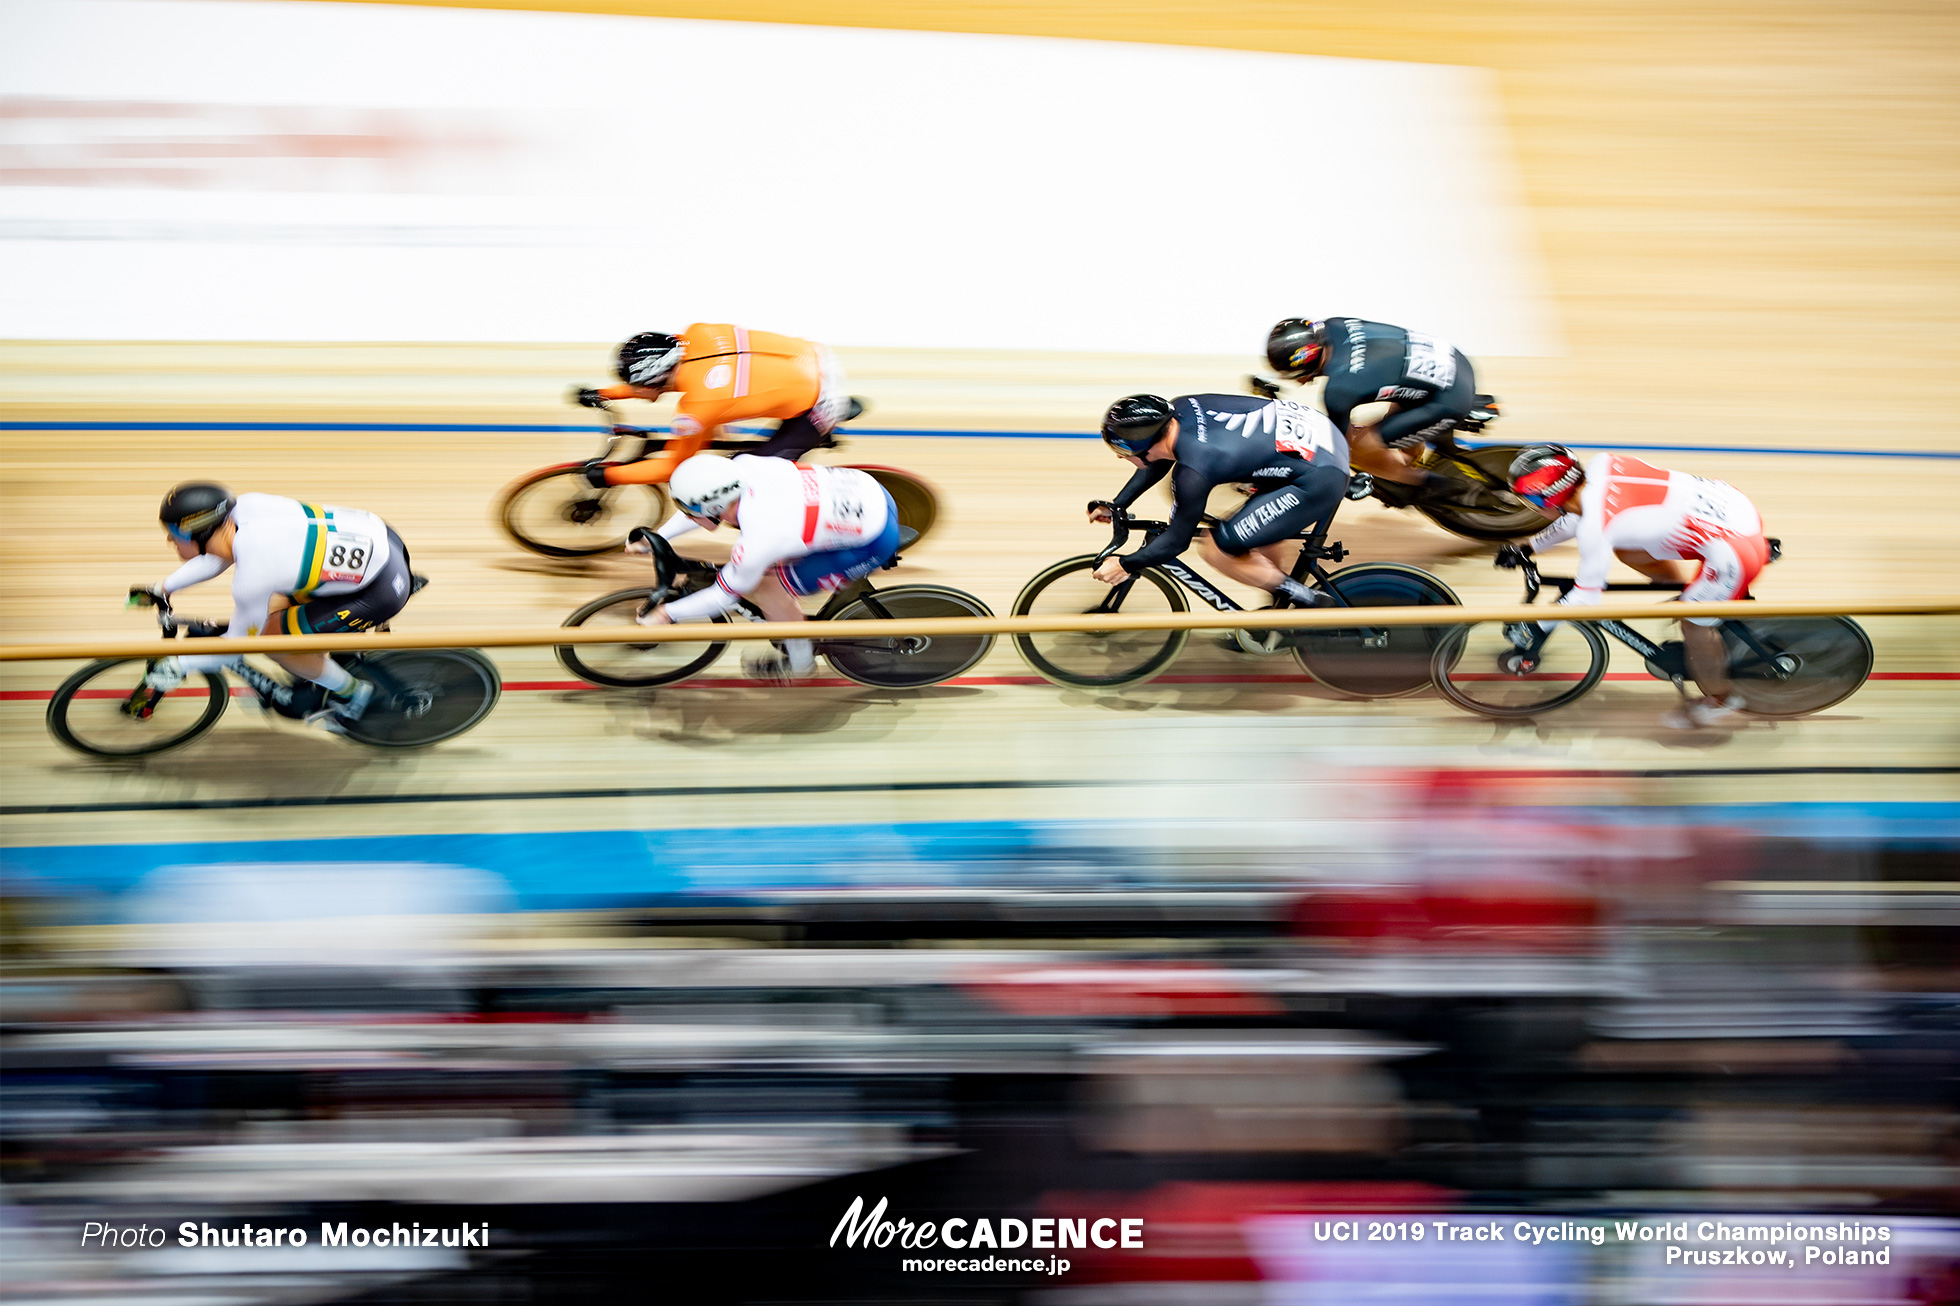 Men's Keirin Semi Final / 2019 Track Cycling World Championships Pruszków, Poland